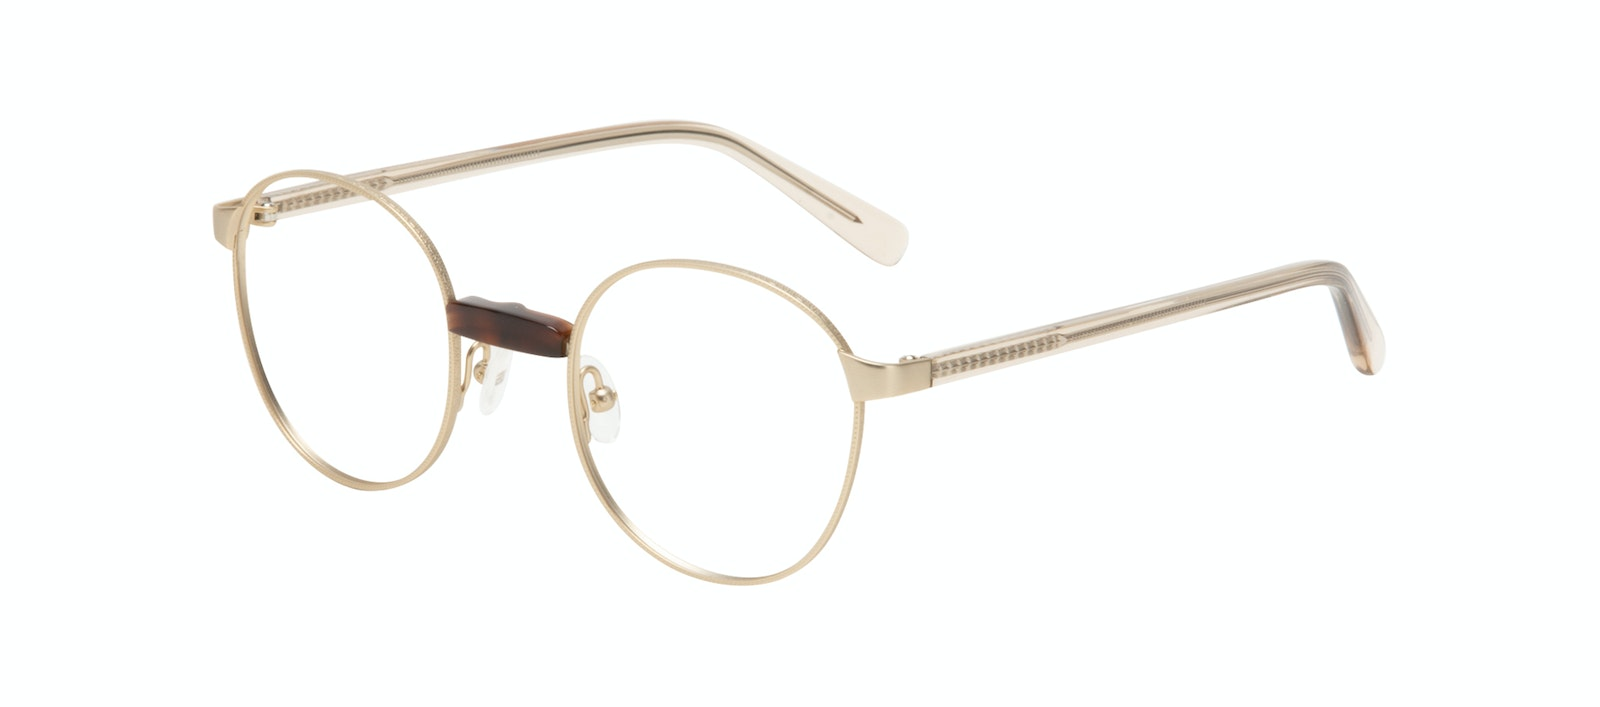 Affordable Fashion Glasses Round Eyeglasses Women Curious Gold Tilt